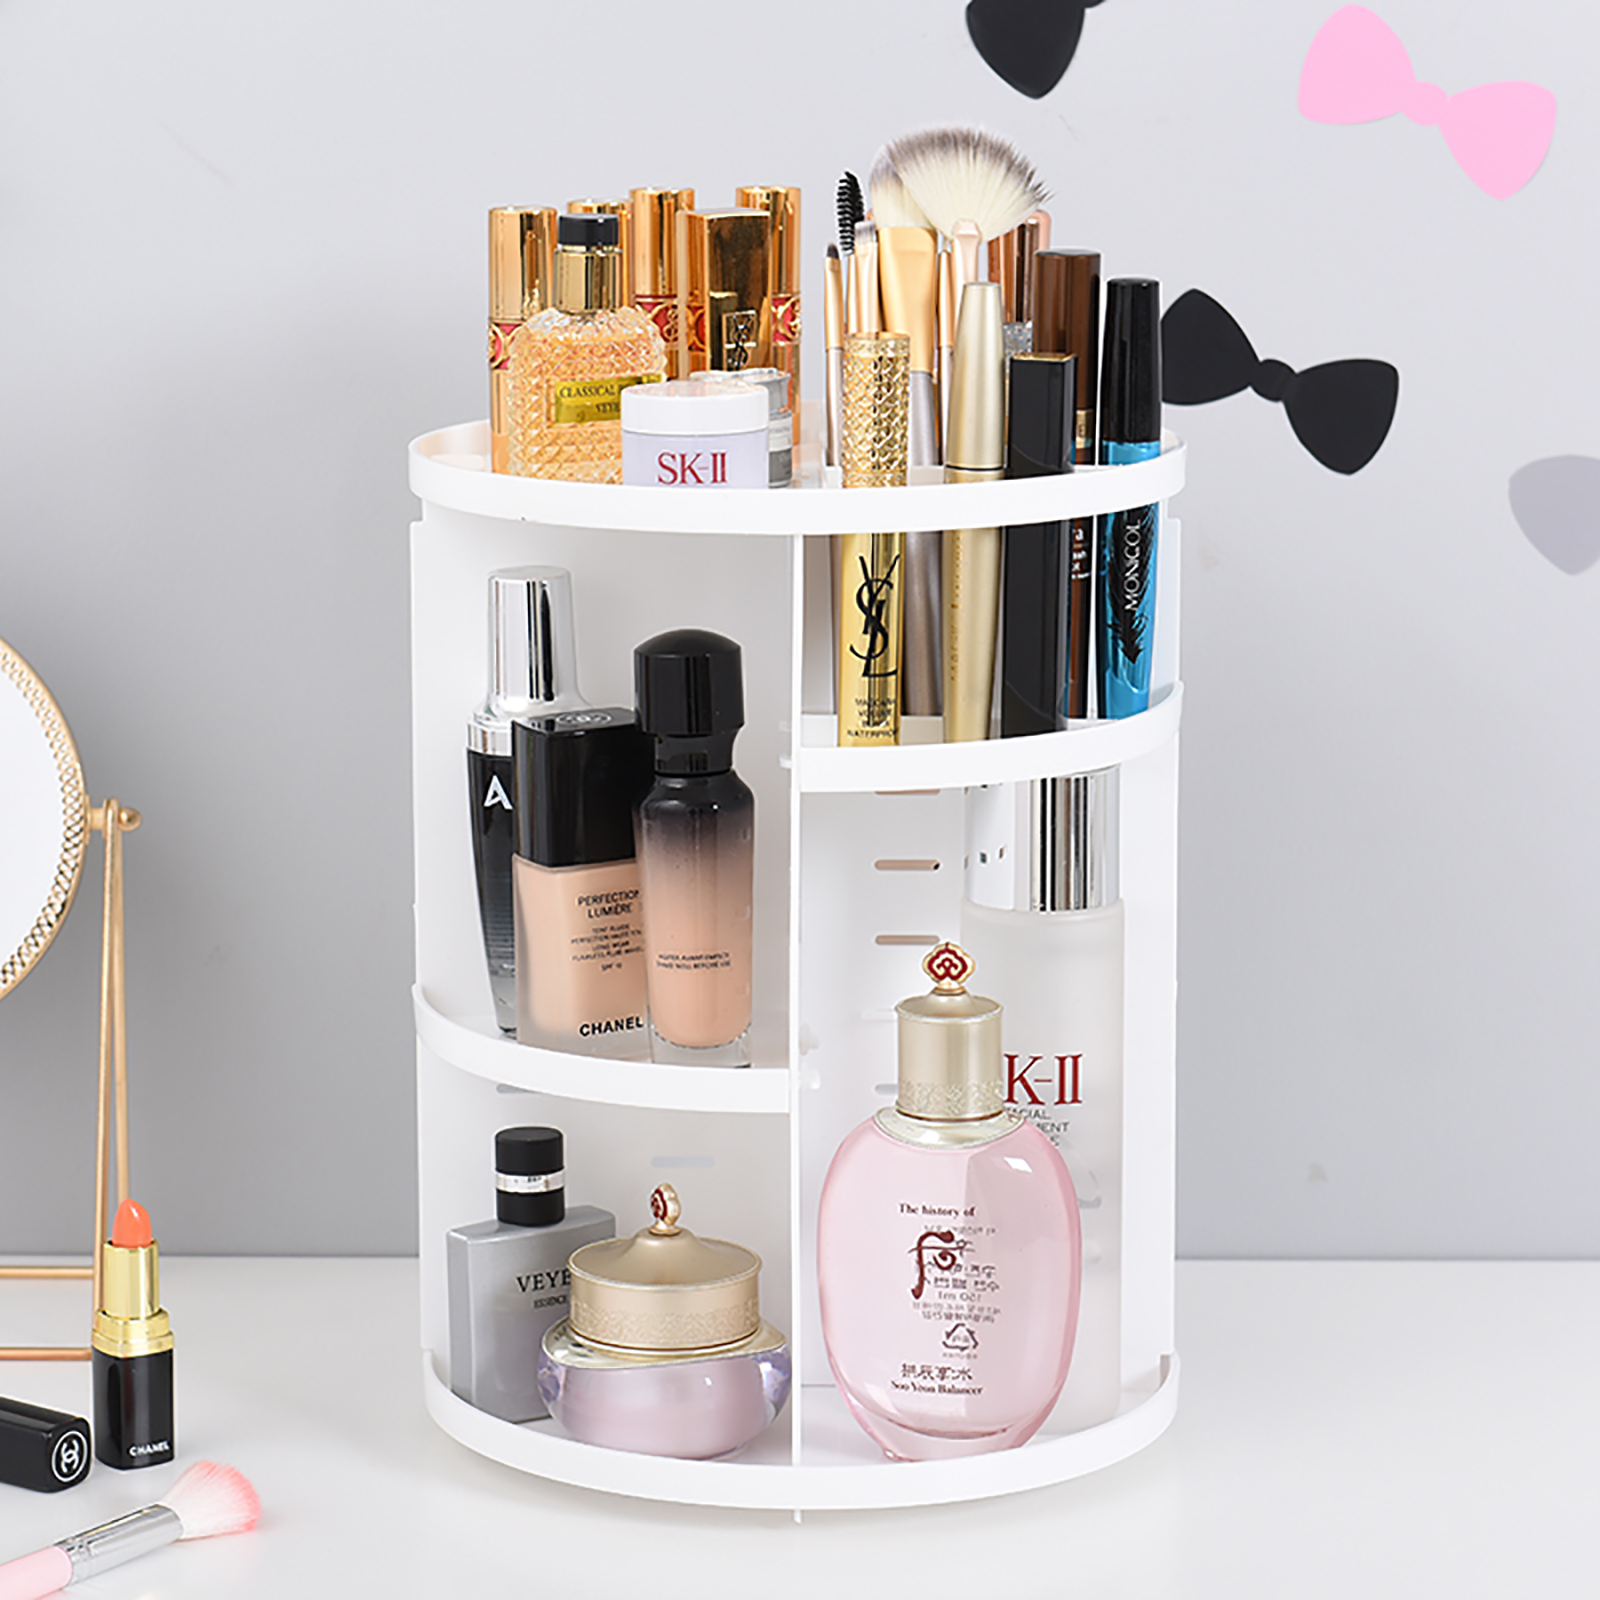 Details about Makeup Cosmetic Rack Holder 360 Degree Rotating Organizer Storage Box Case White